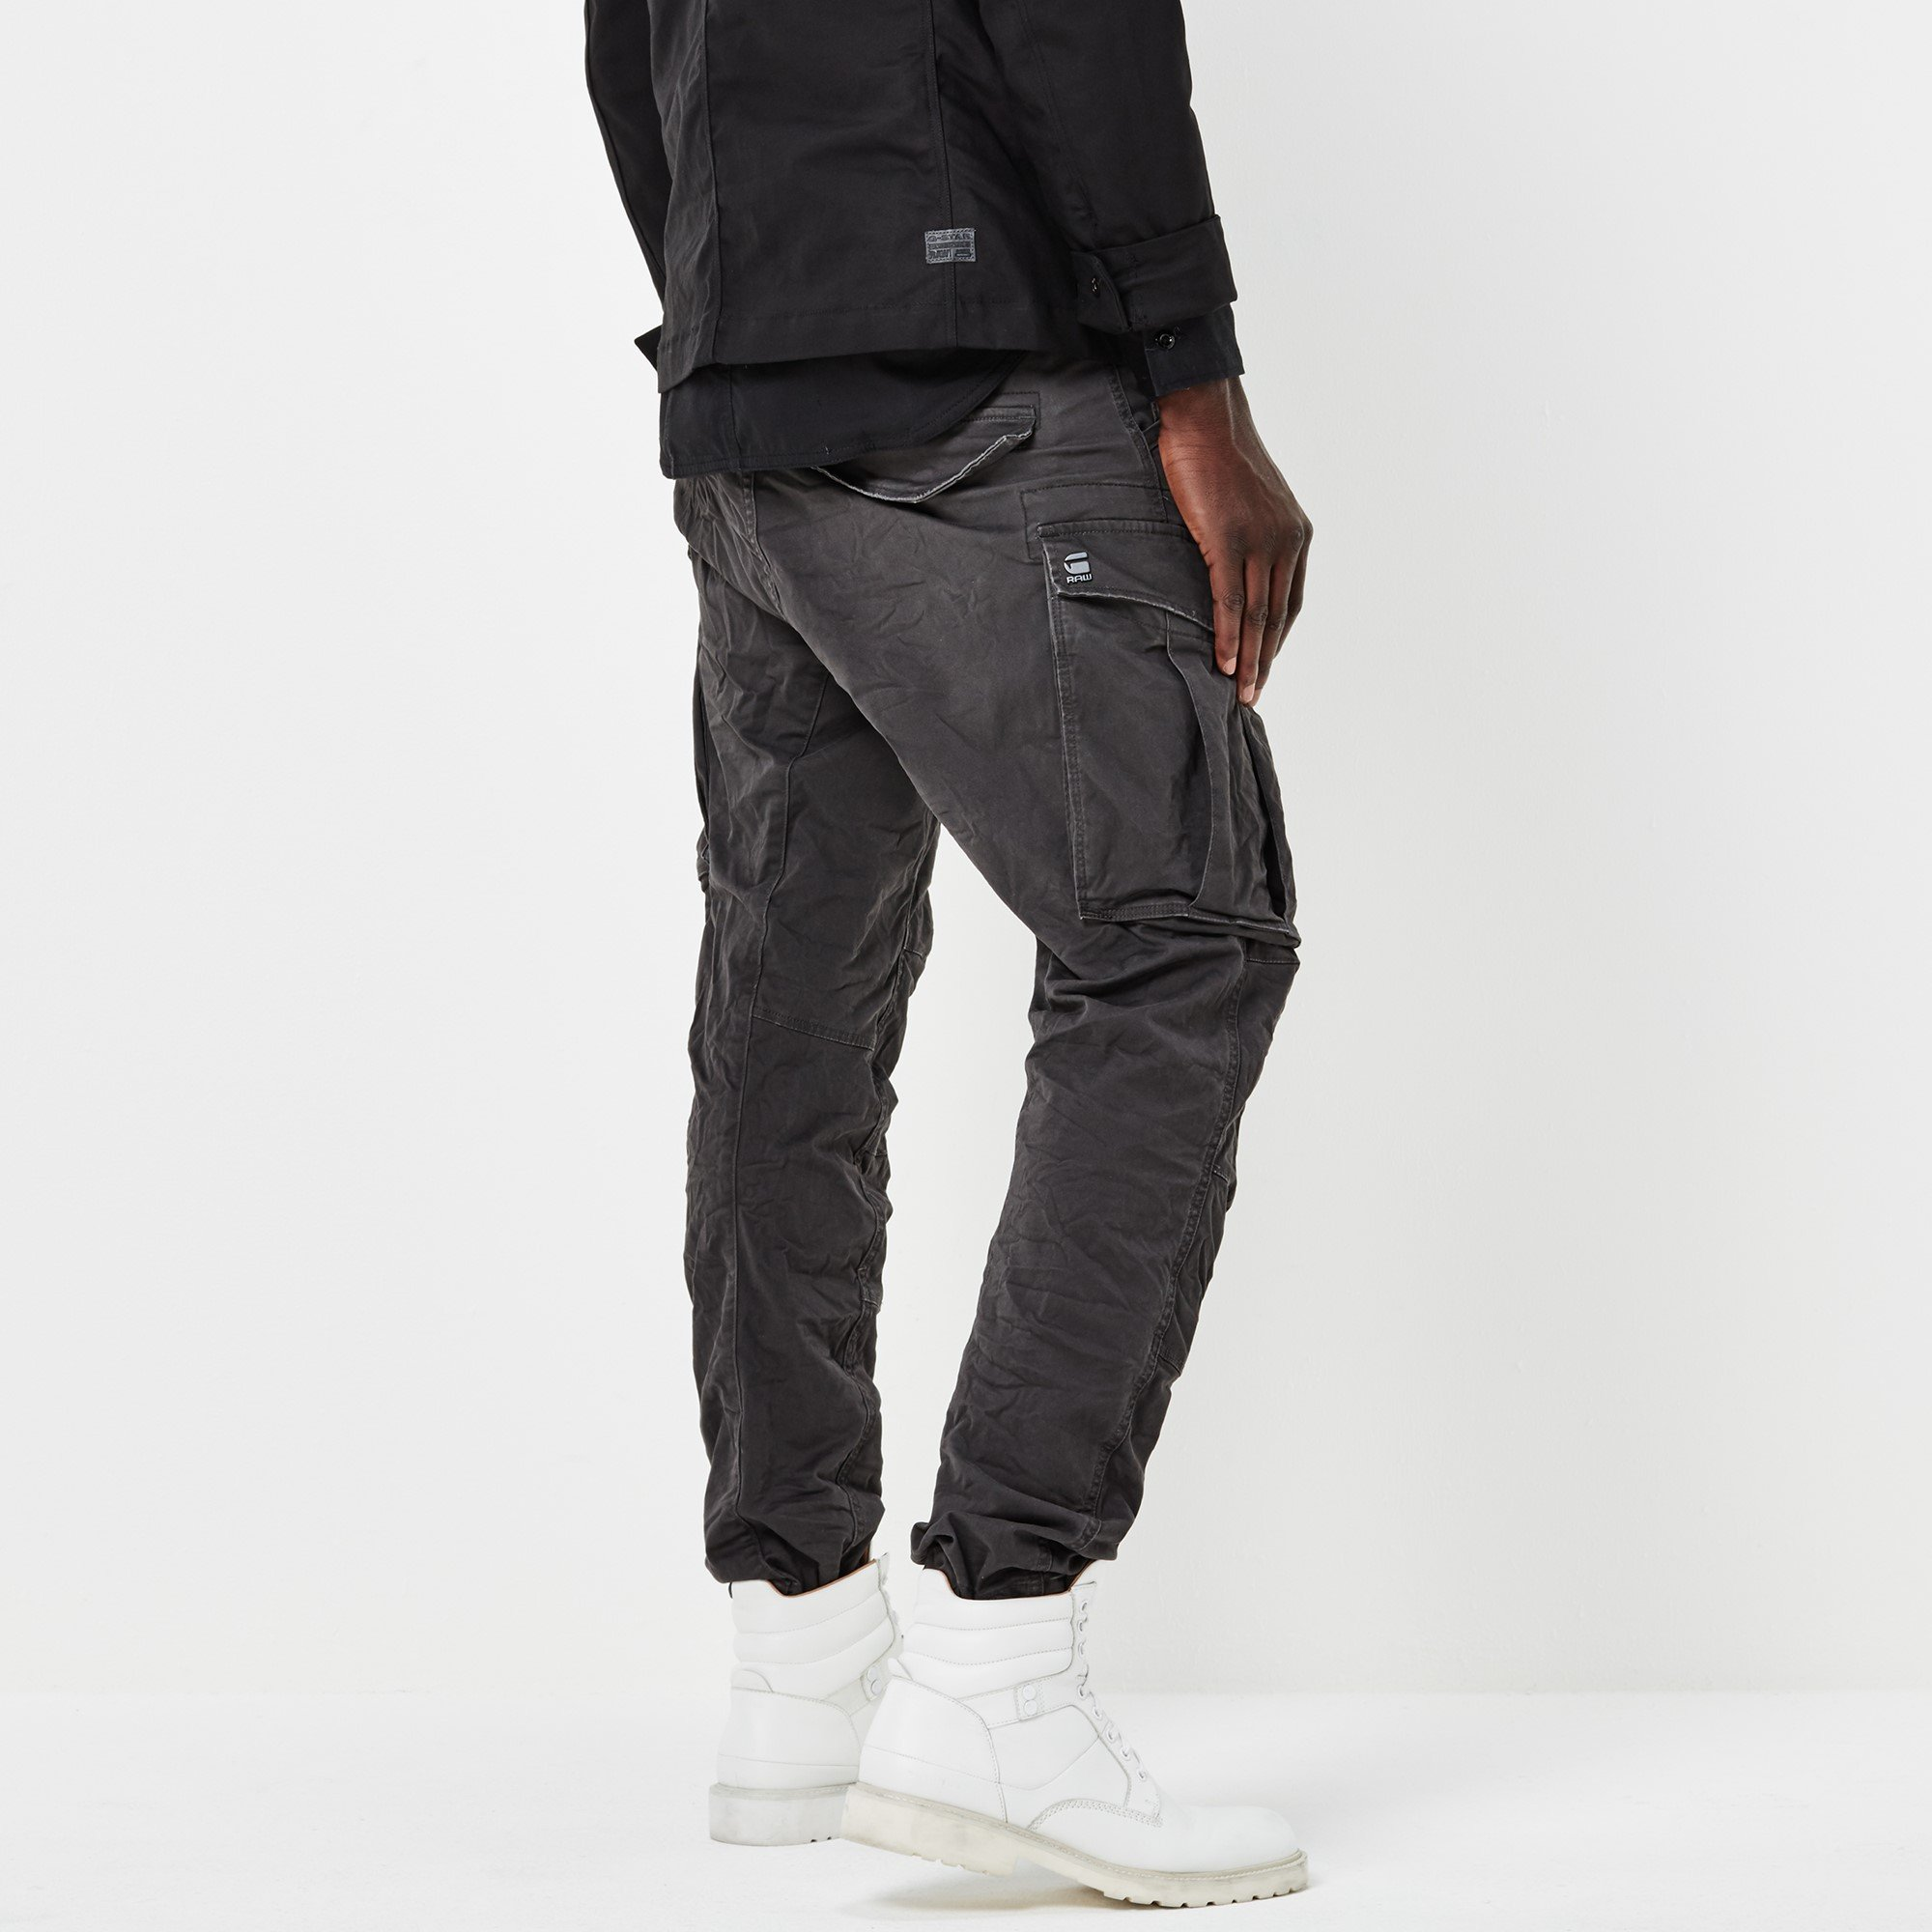 G-Star Raw Men's Rovic Zip 3d Tapered, Raven, 38x34 by G-Star Raw (Image #2)